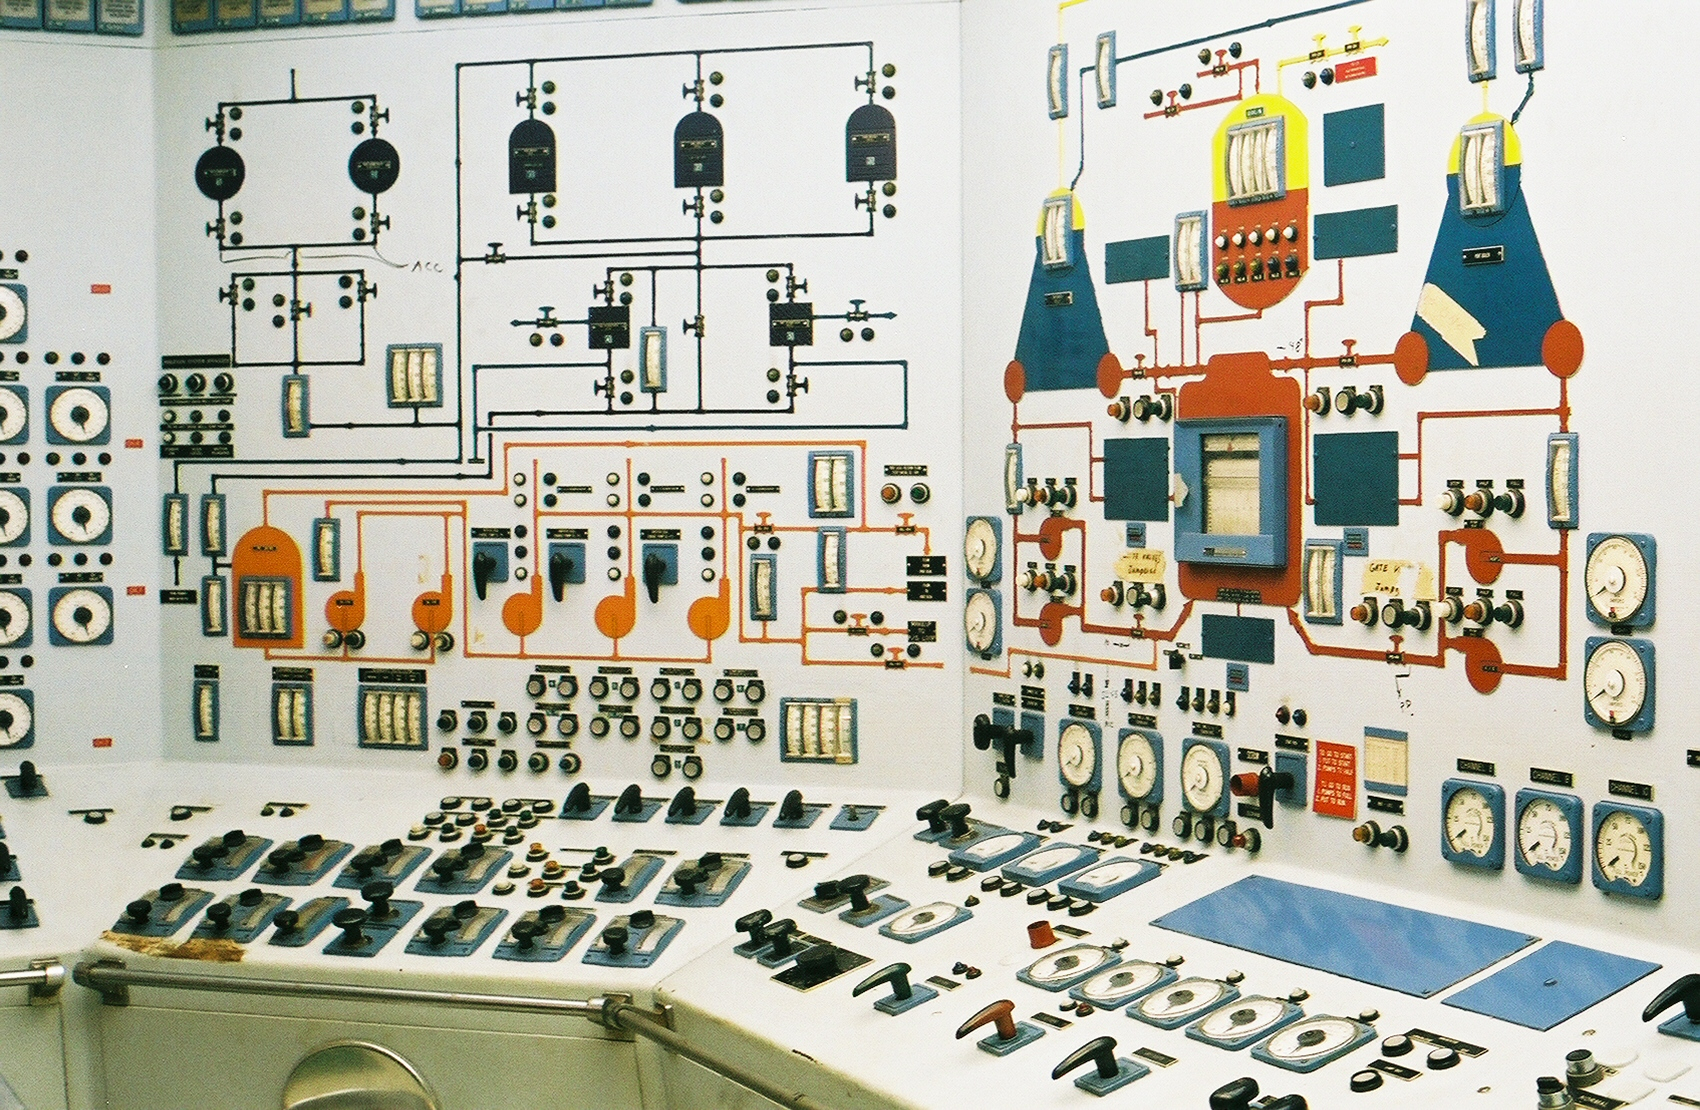 nuclear_ship_savannah_-_reactor_control_room_-_center_and_left_panels